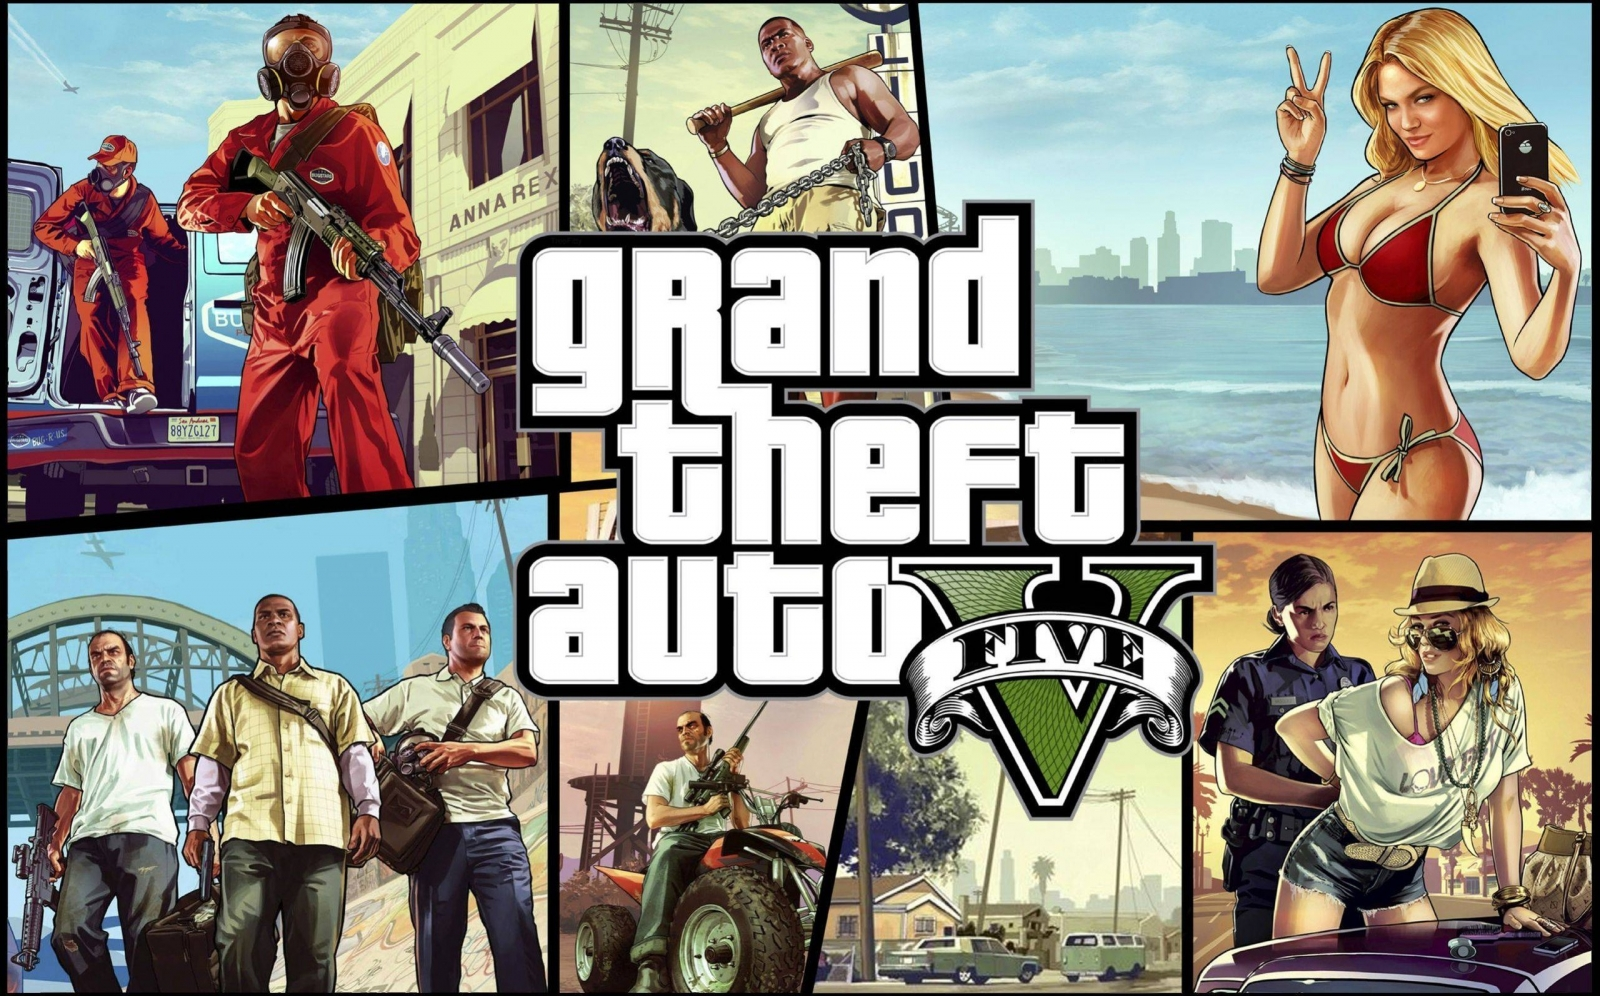 GTA 5 Next-Gen: How to Play Early on PS4 and Xbox One, Before Everyone Else